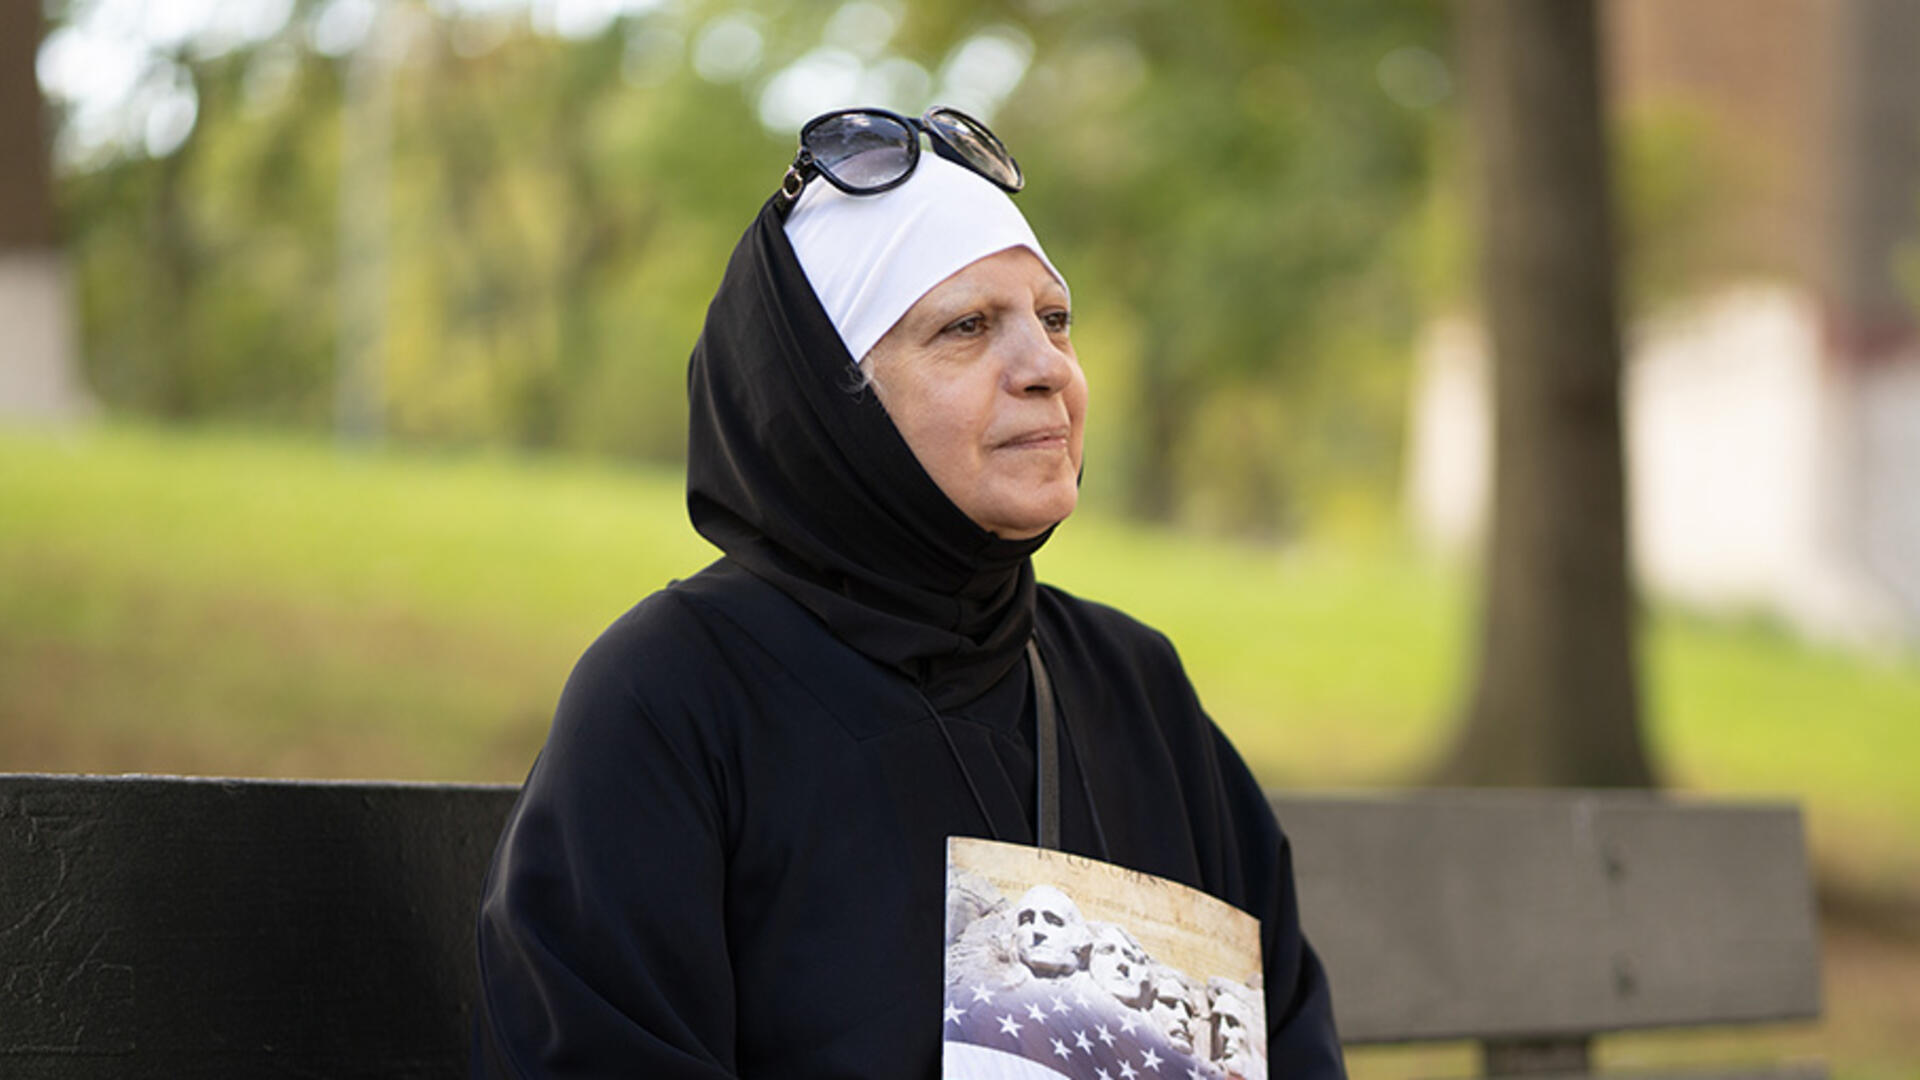 Maha al-Obaidi sits on a park bench looking off into the distance and holding a U.S. citizenship test study book.